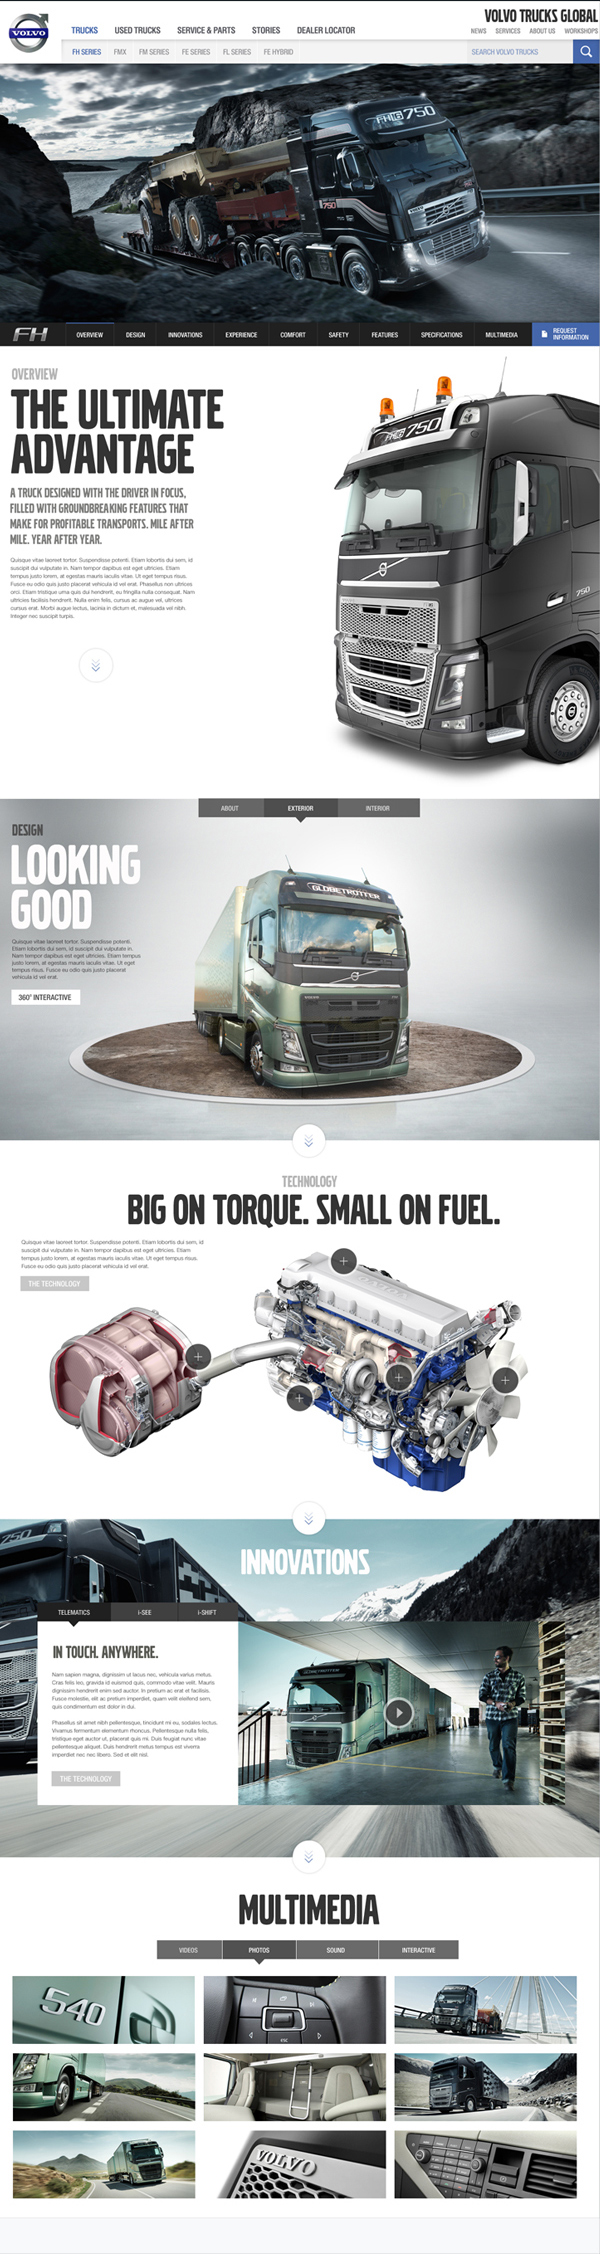 analysis of volvo trucks penetrating the u s market Buy custom volvo case study essay paper the us market viable, volvo trucks should first to ensure the market is well targeted before penetrating.